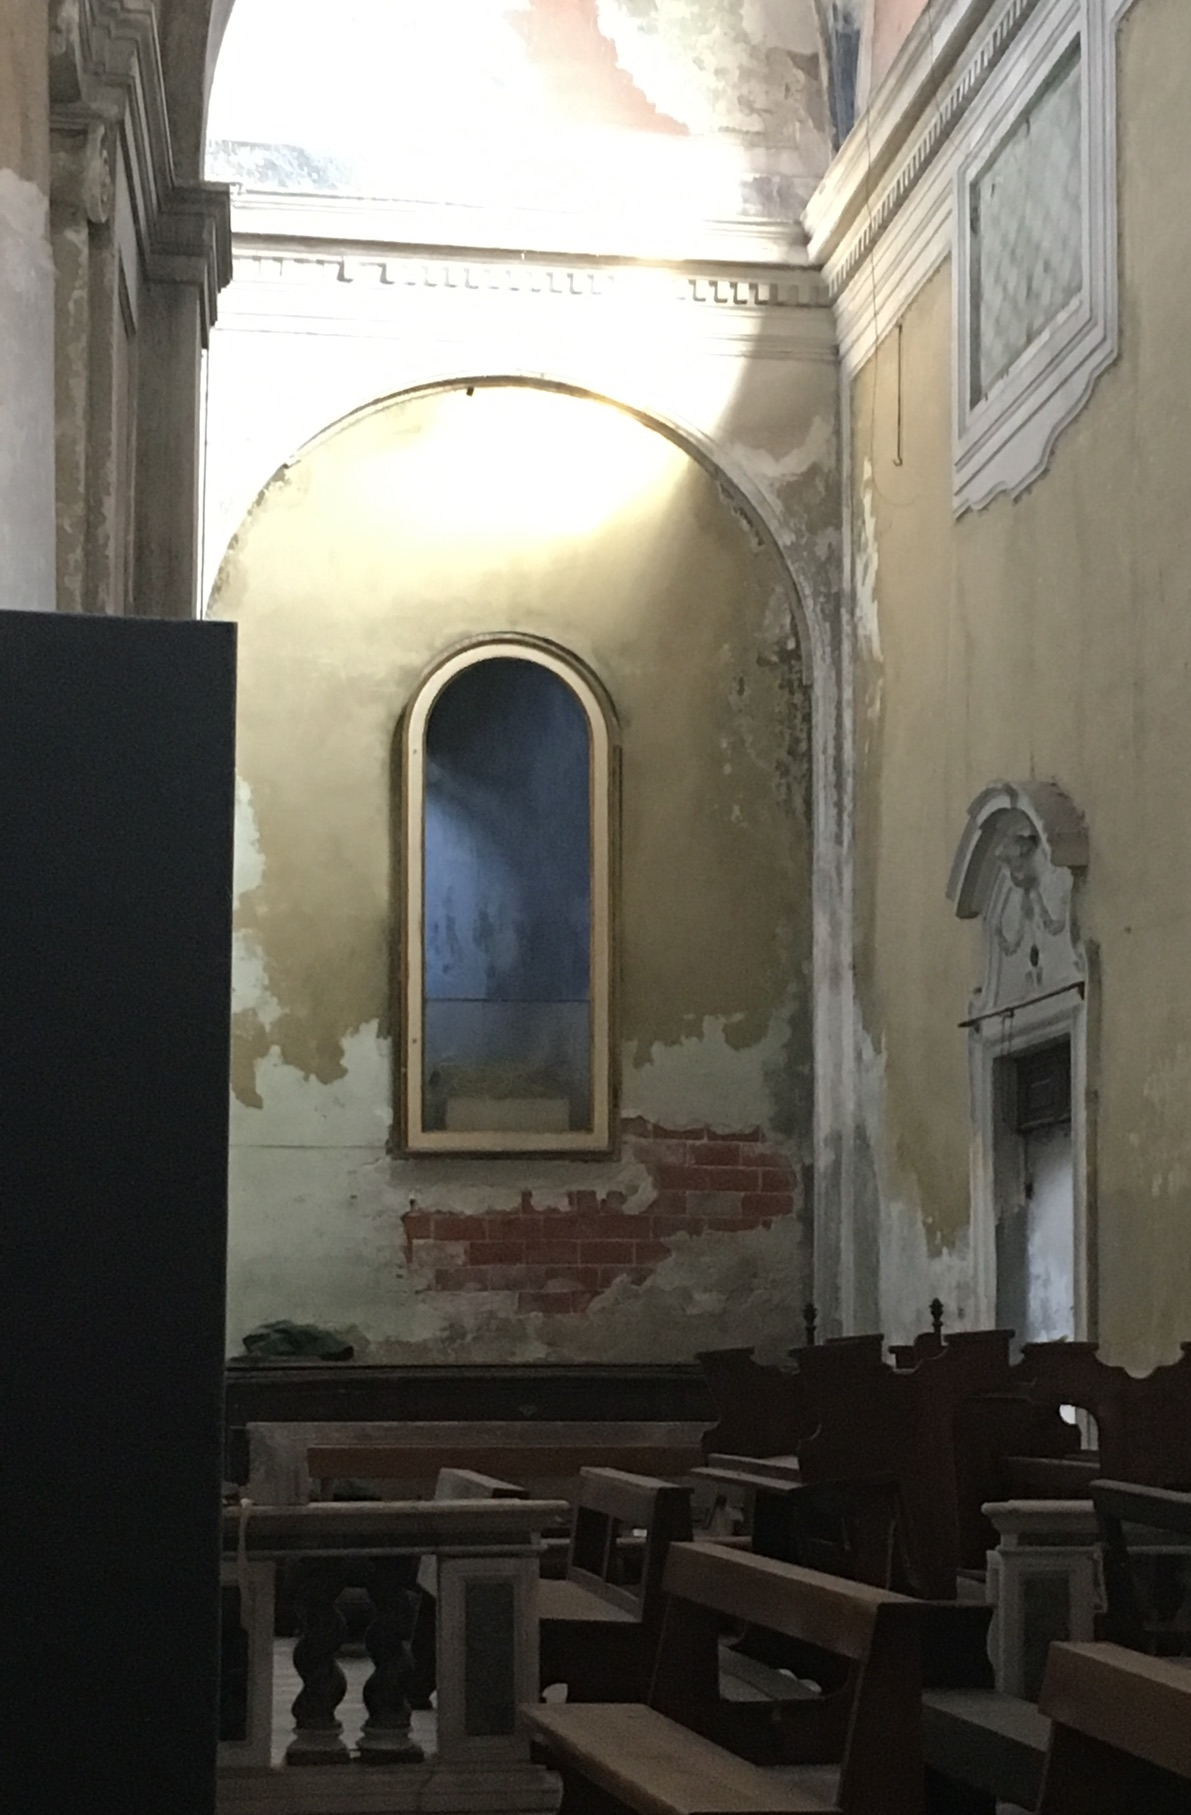 One of the side chapels of the church.